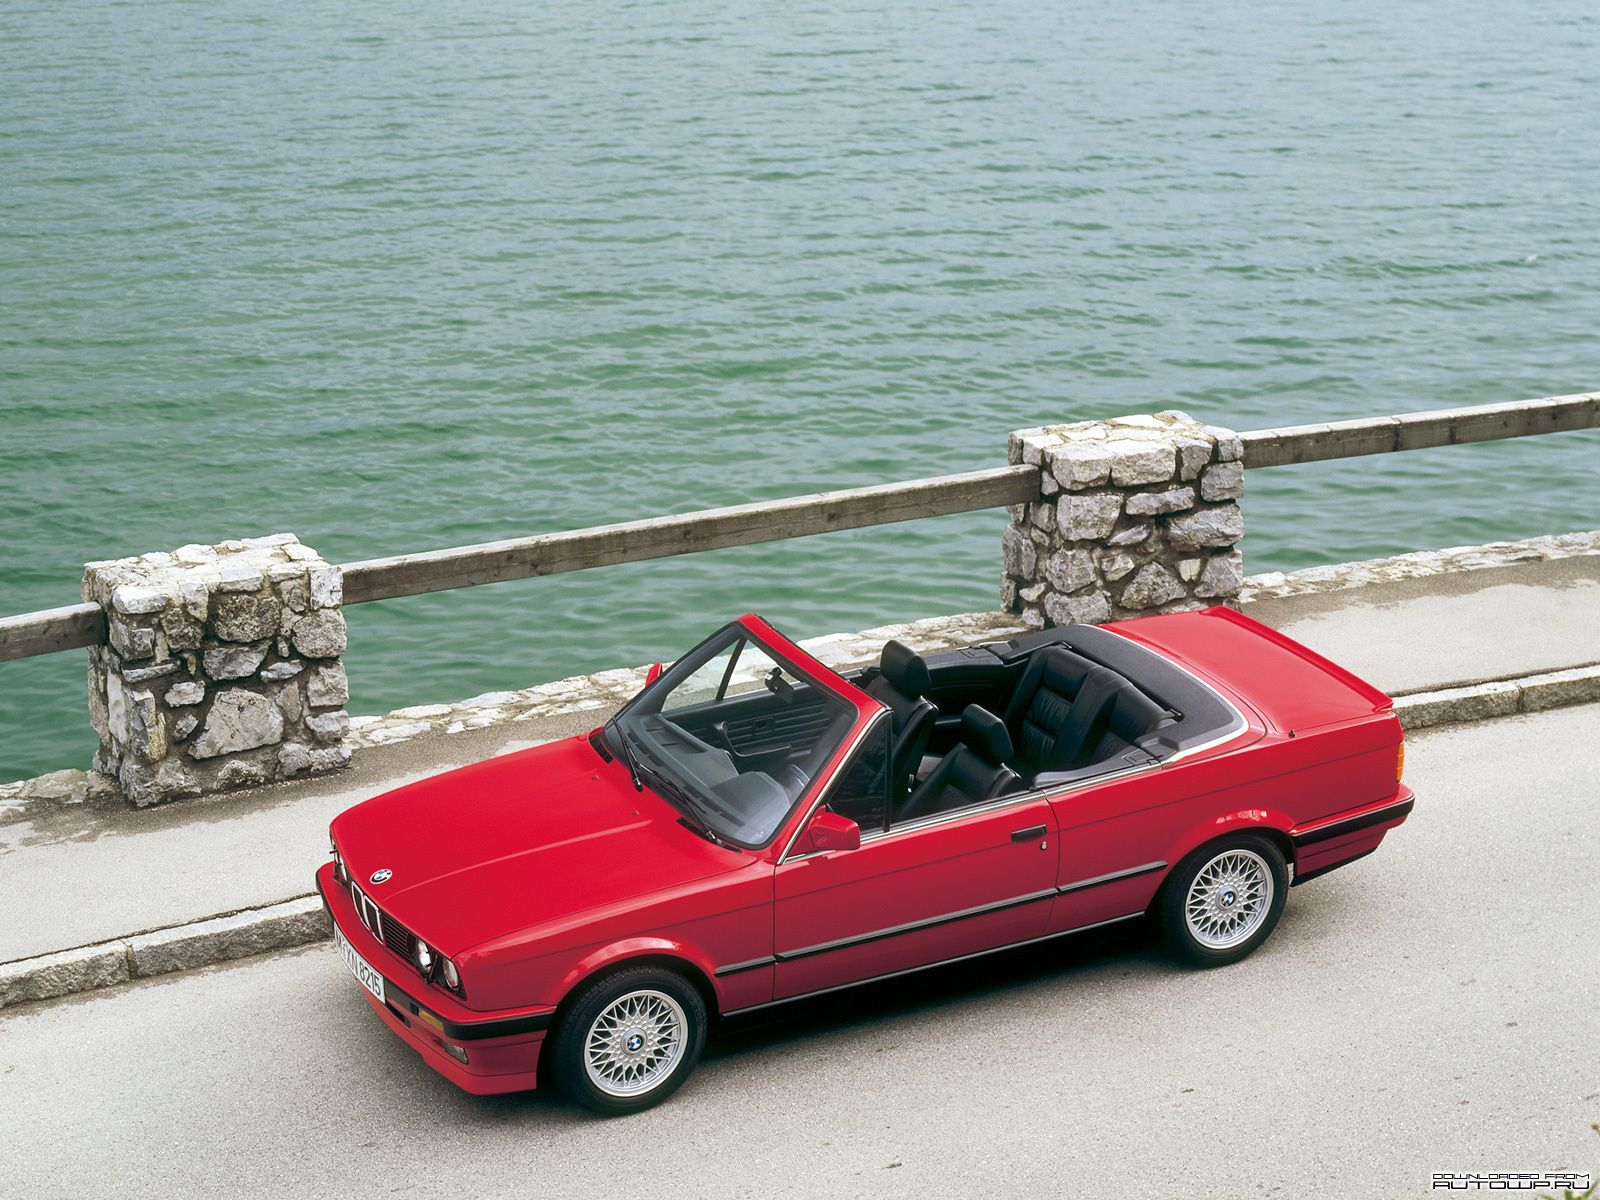 1985 BMW 325i Cabrio - BMW pictures information & specs NetCarShow ...